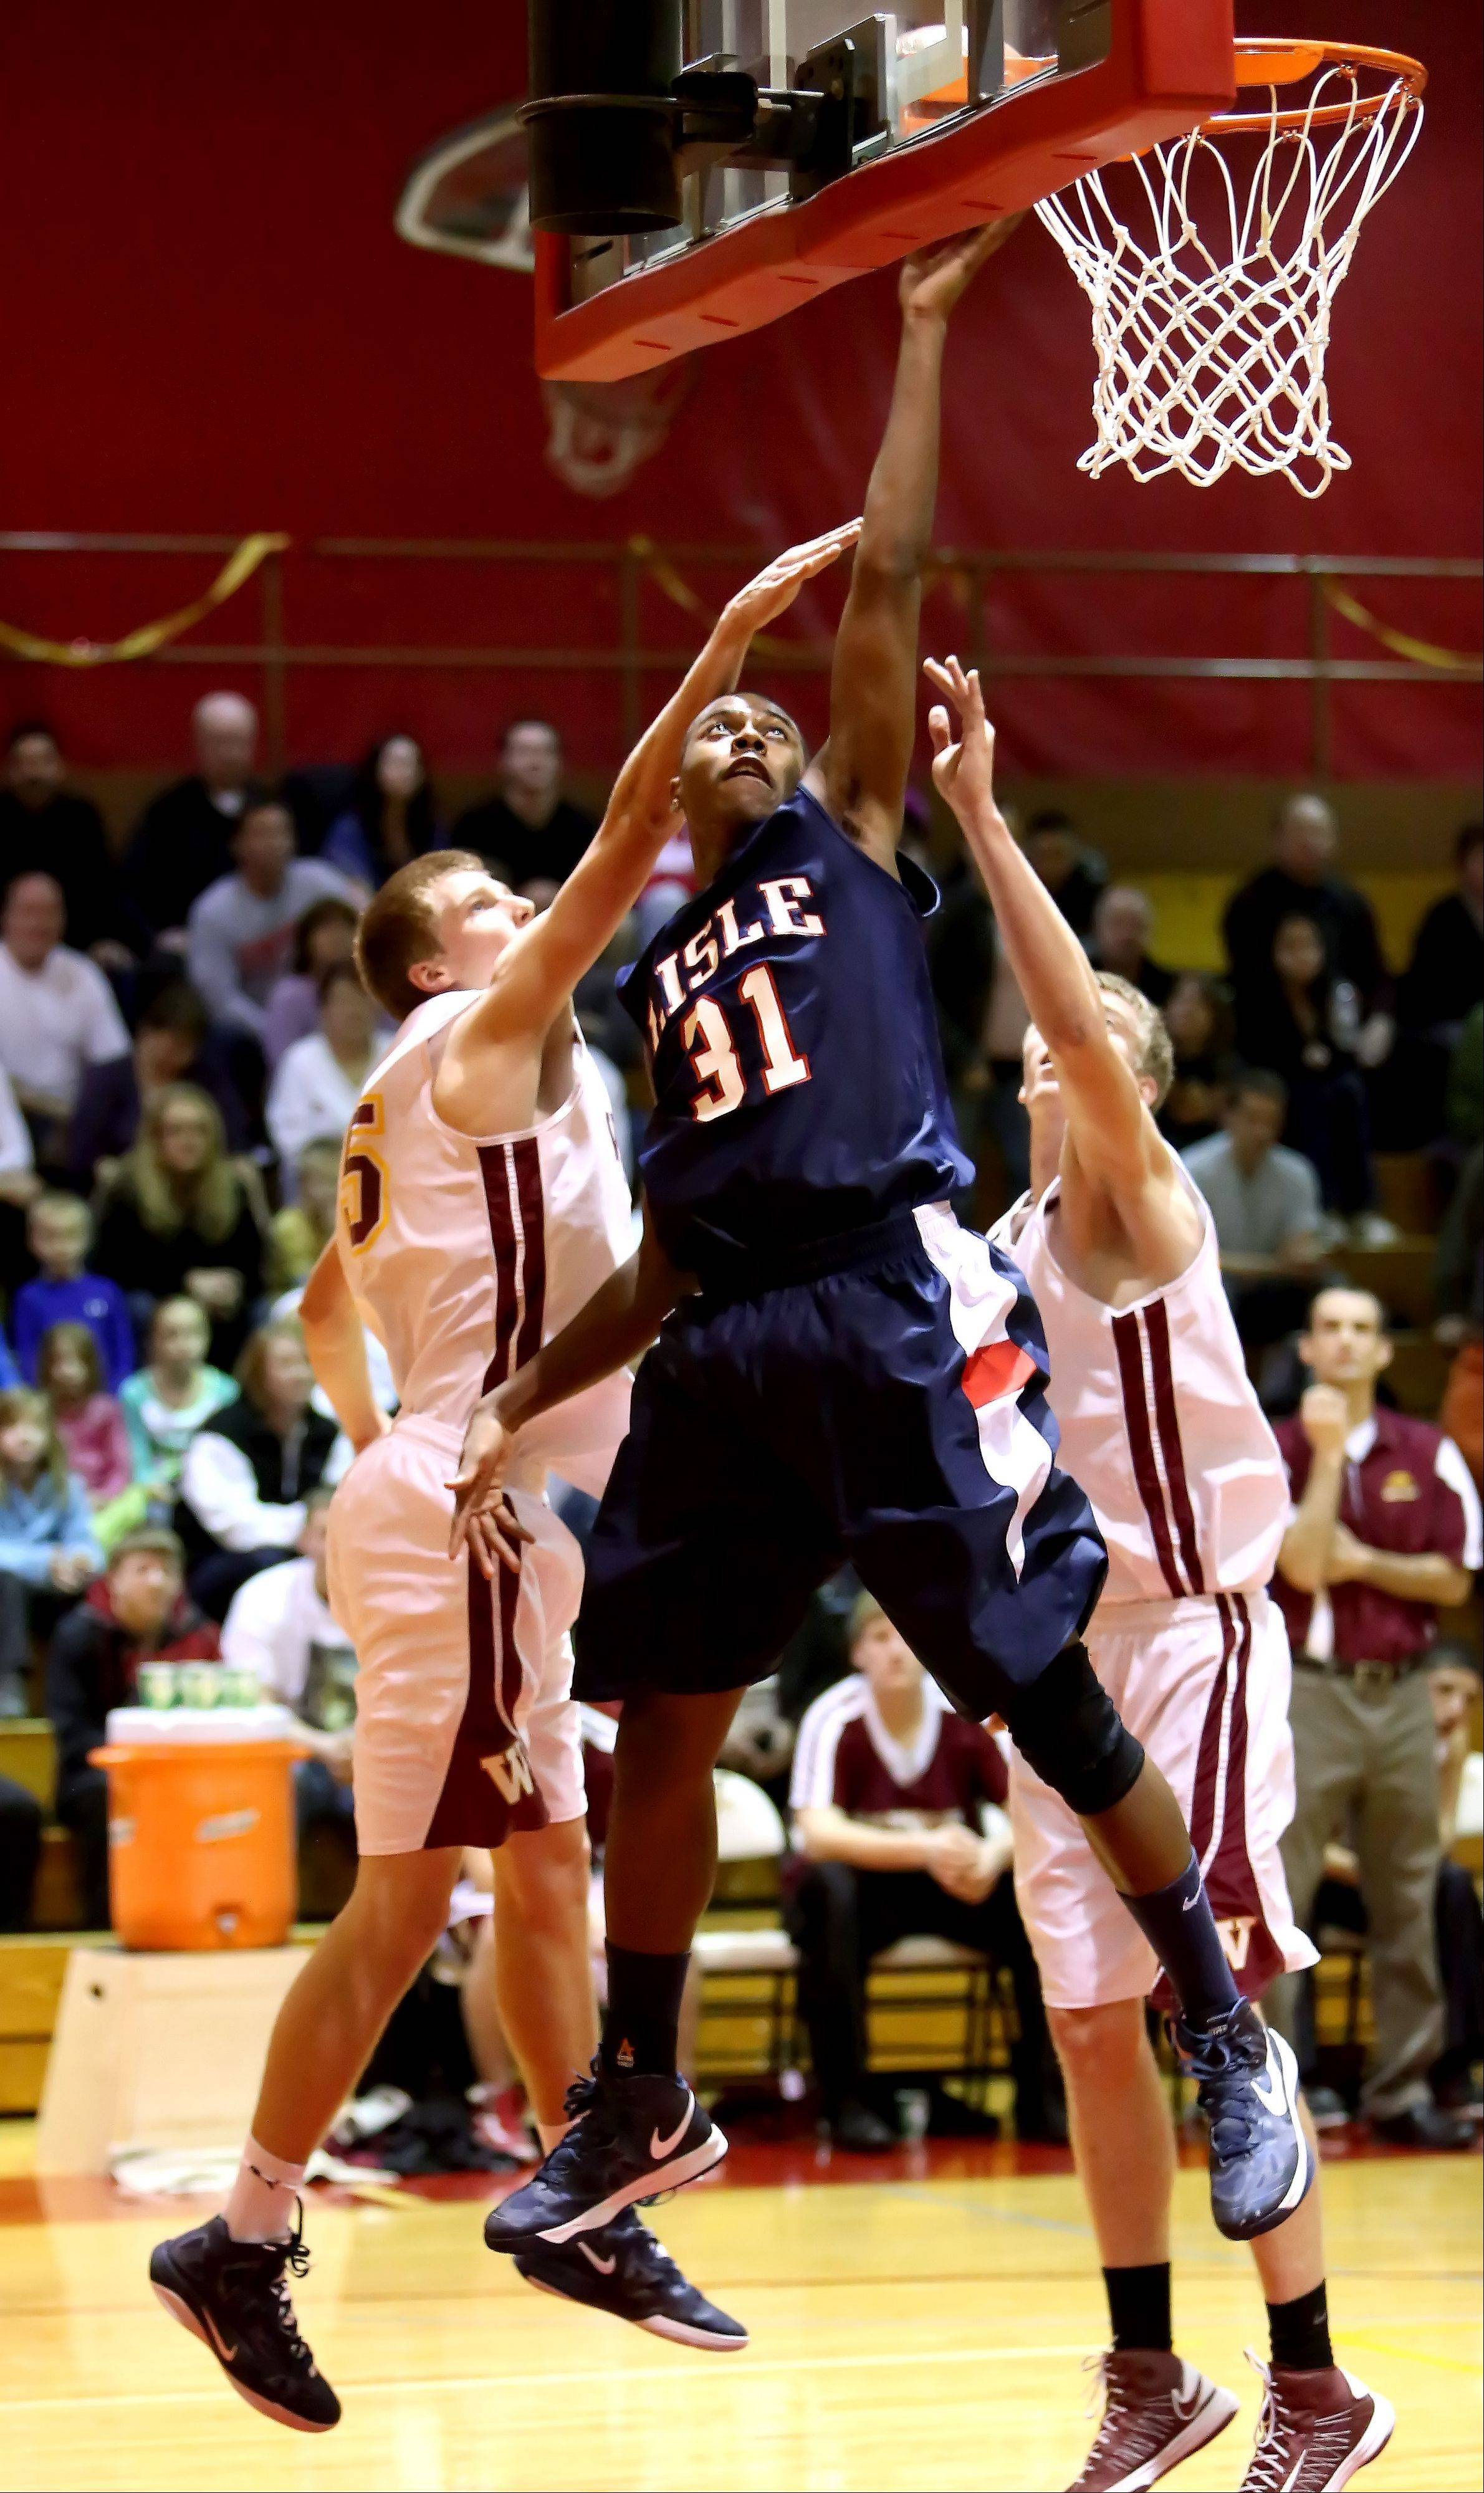 Lamont Ross of Lisle goes up for two points in action against Westmont in Class 2A regional boys basketball on Monday in Westmont.